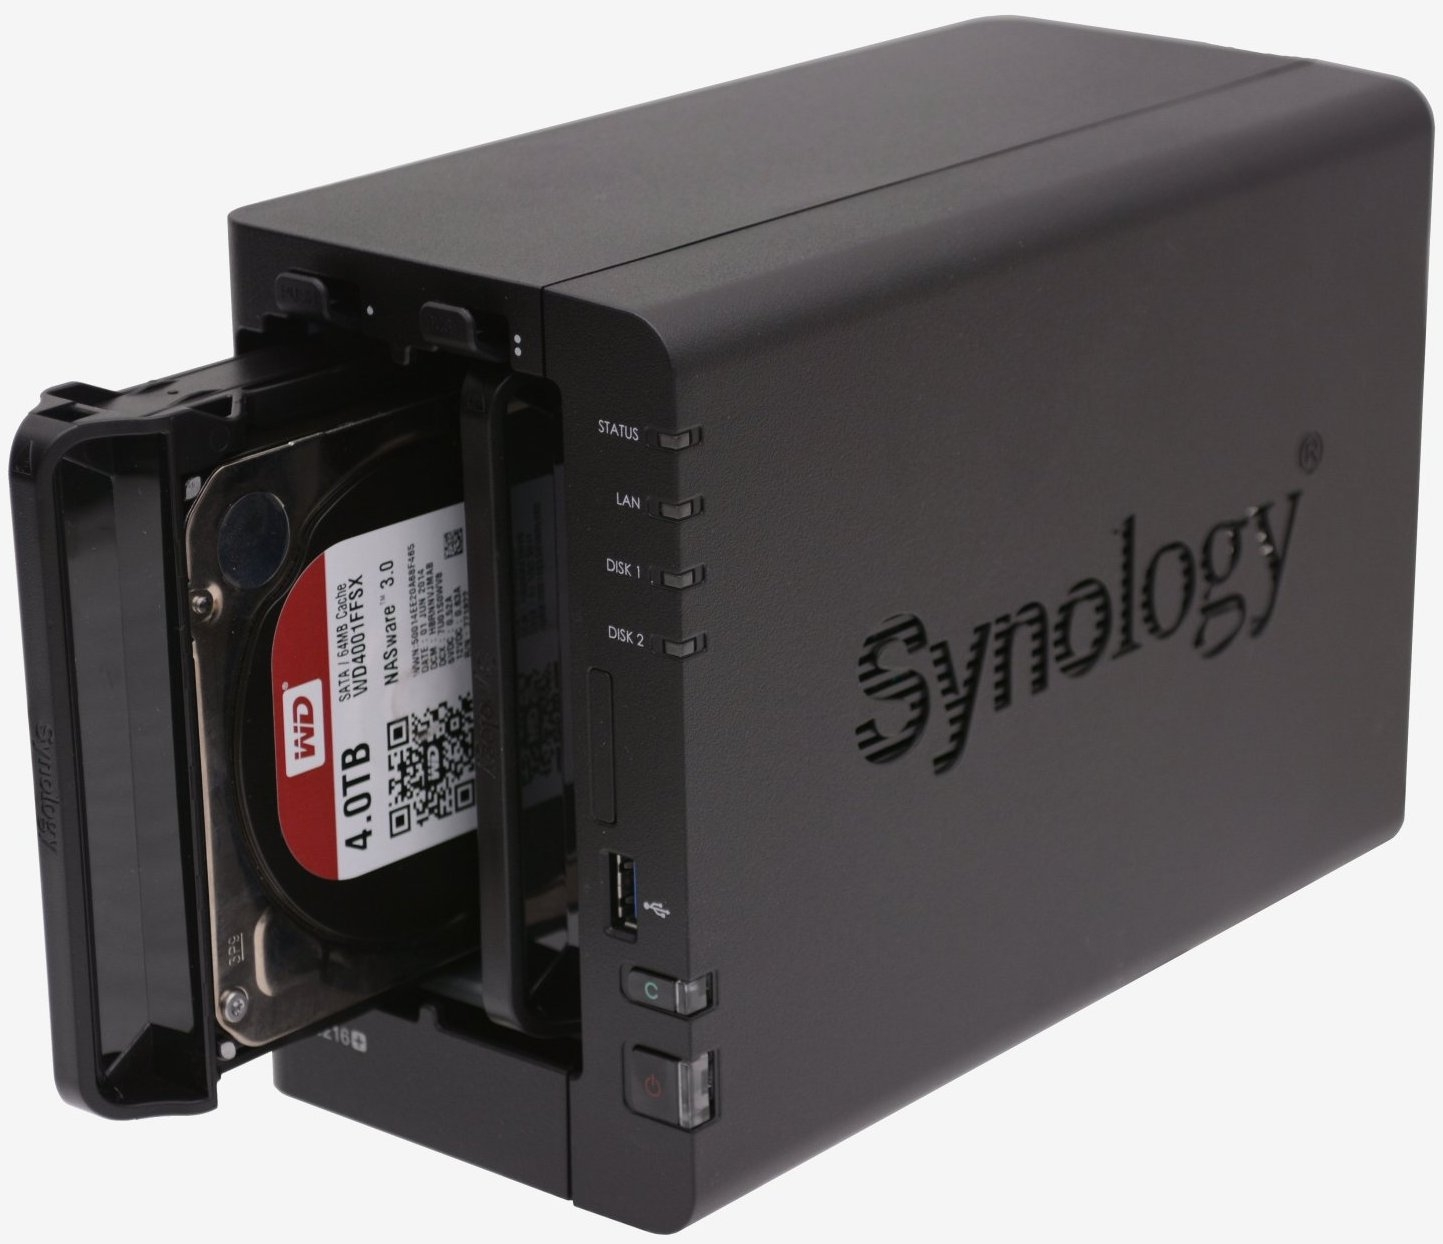 Synology DS216+ Review: Store, backup or stream your data